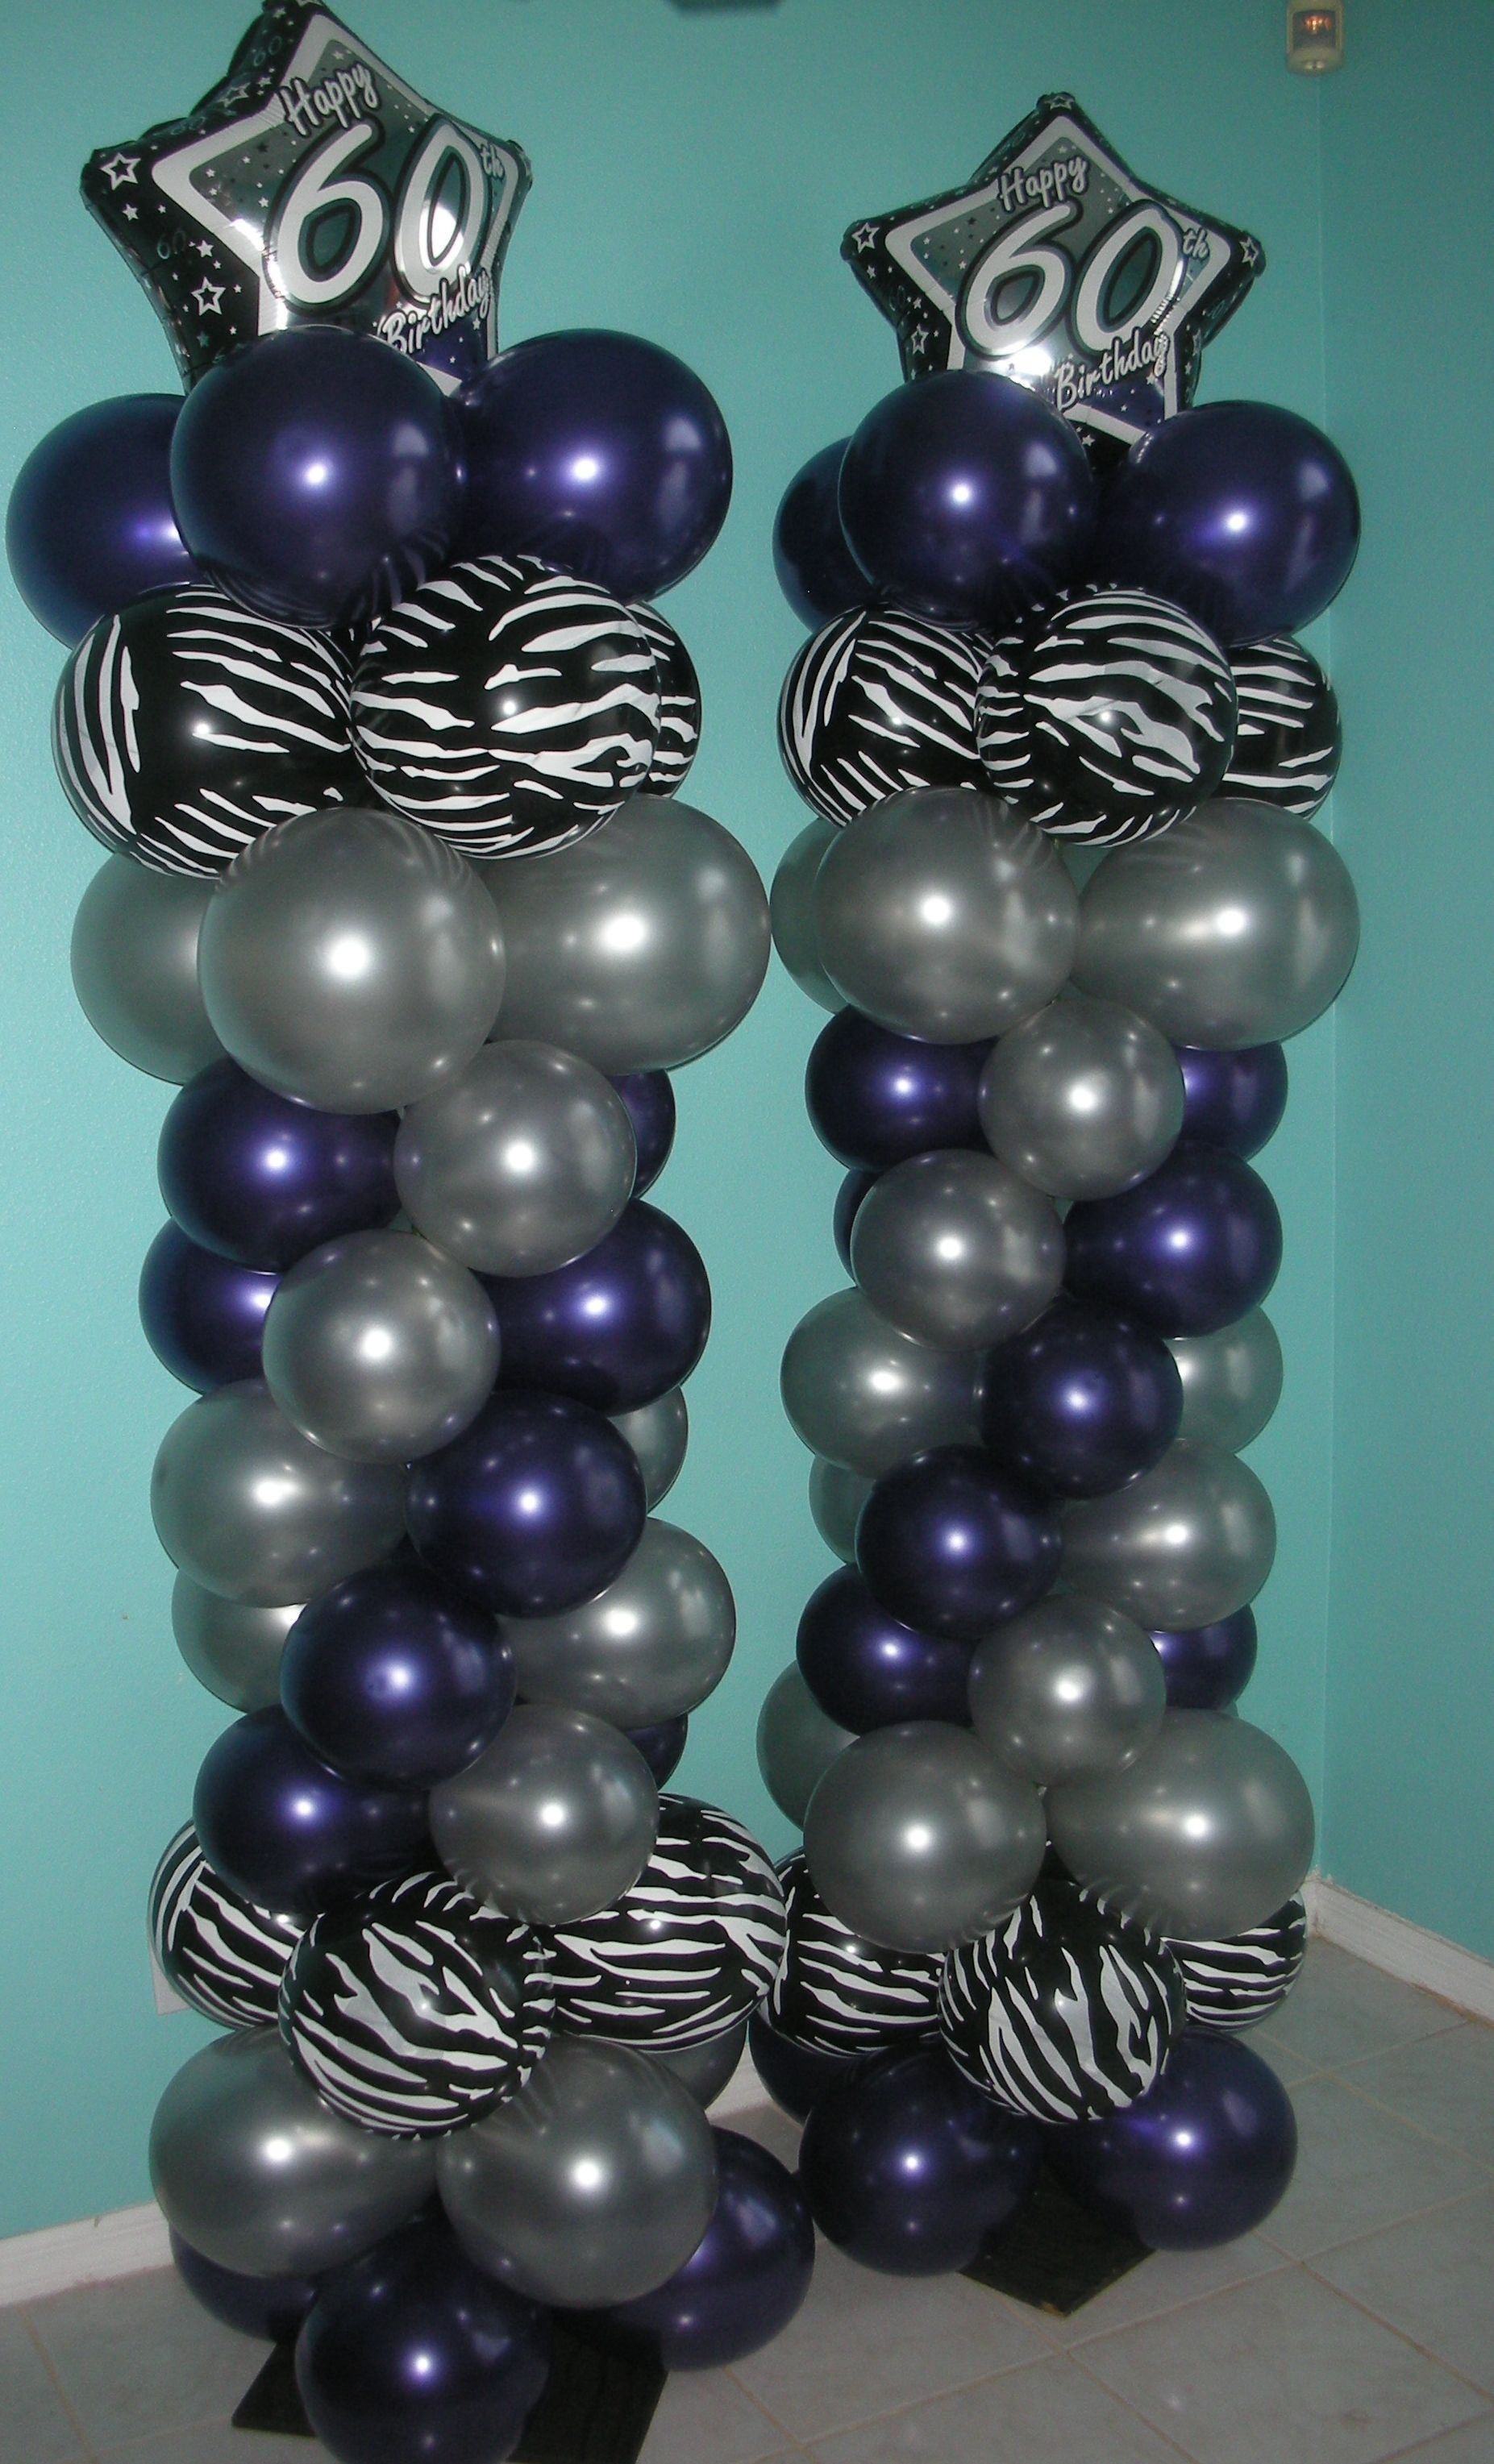 Balloon Columns For 60th Birthday Party Purple Passion Theme By Inflated Expressions